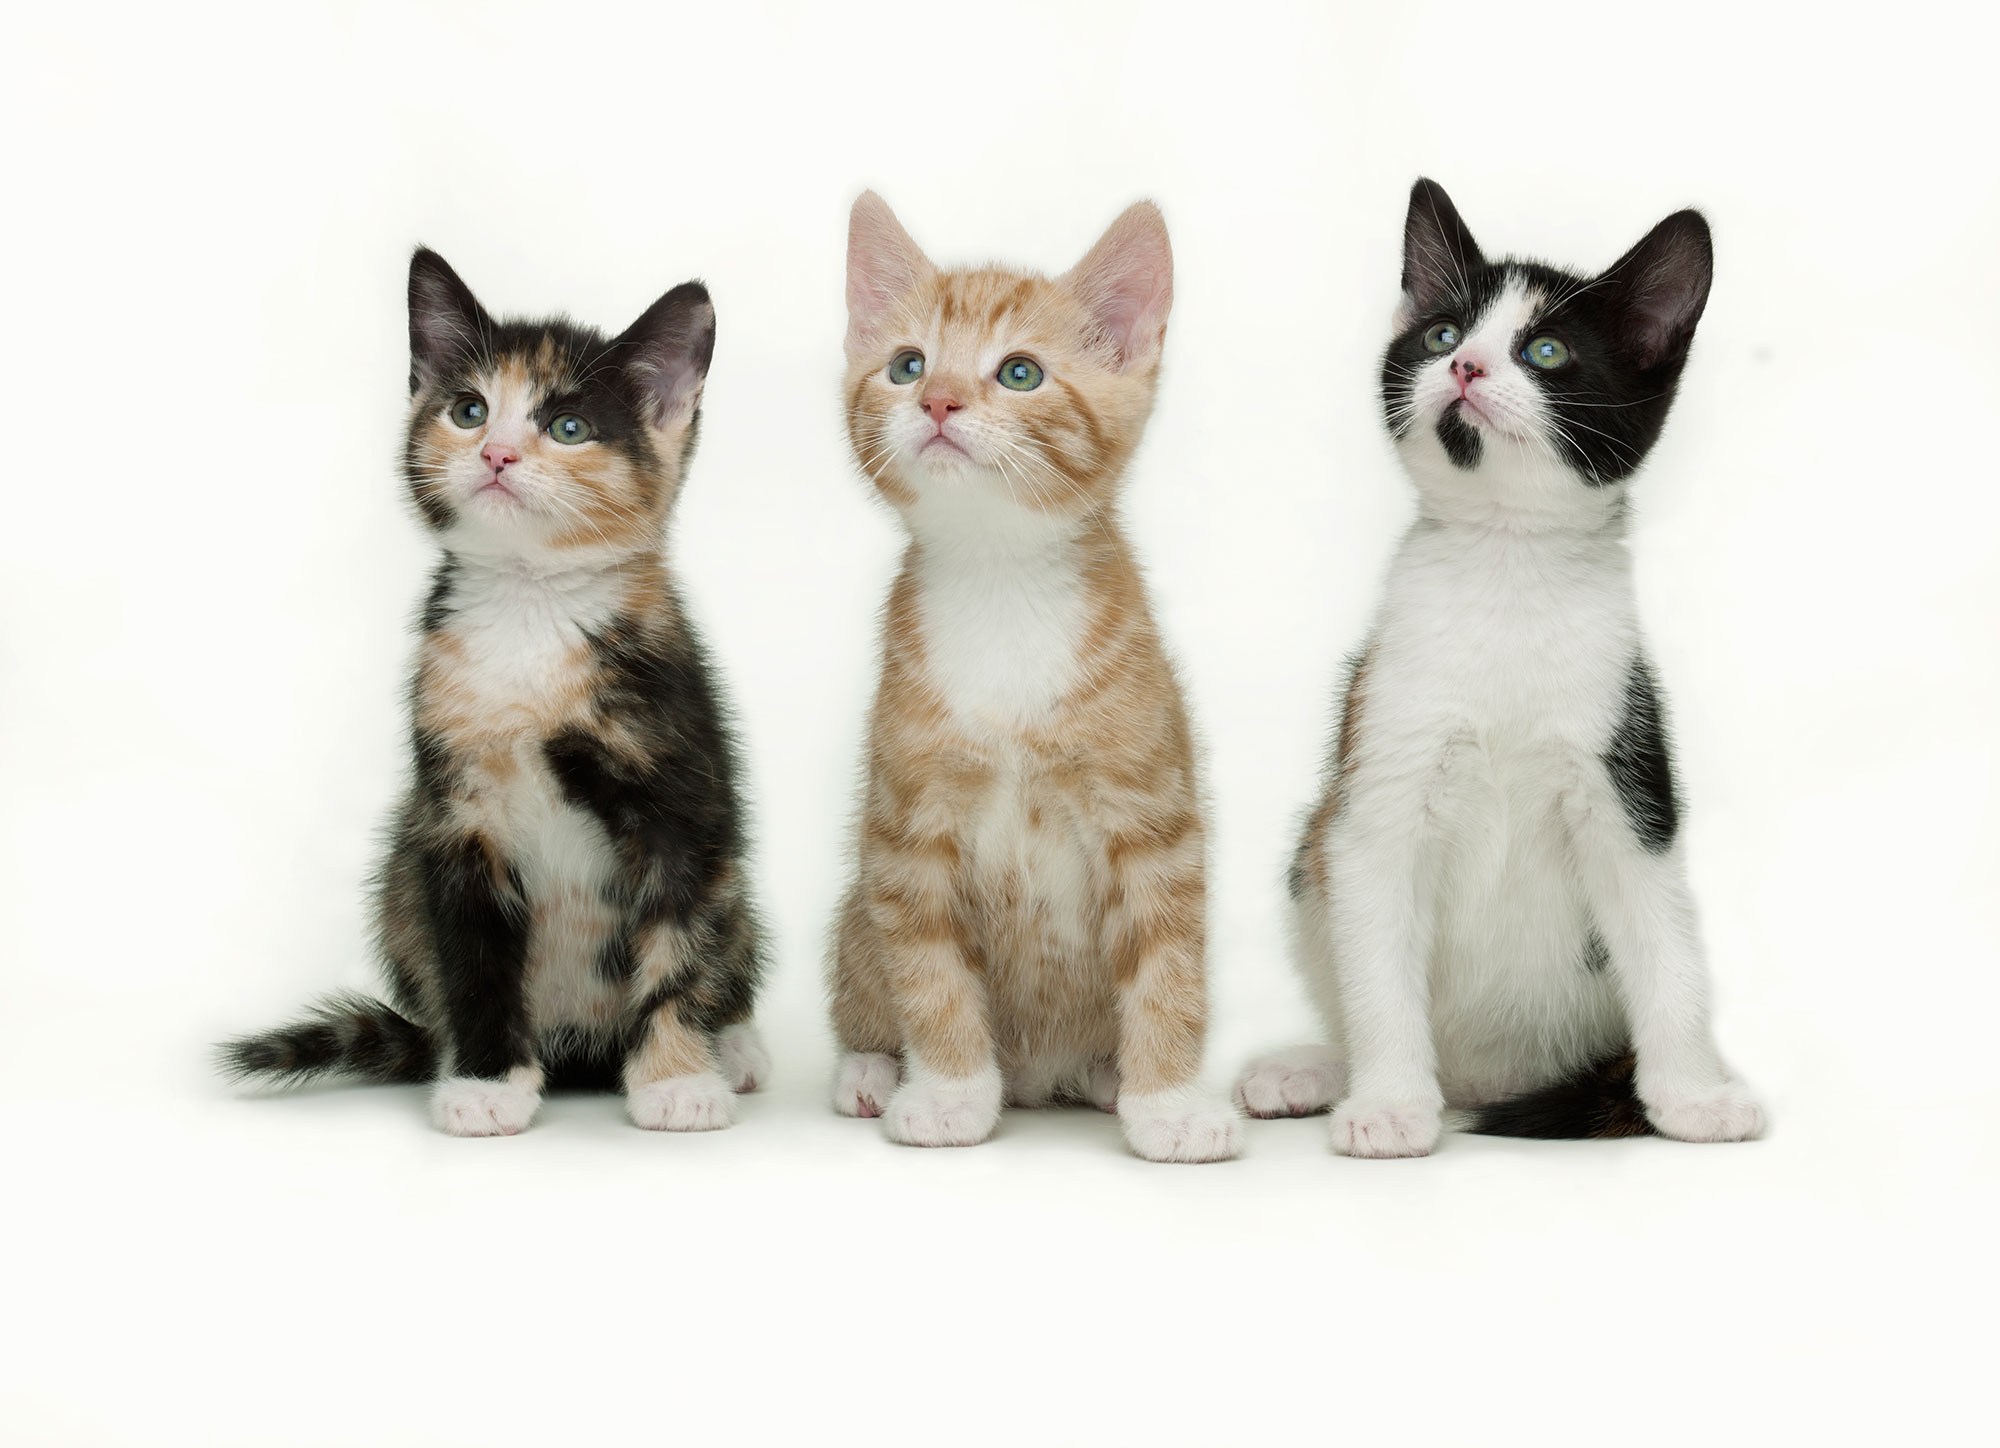 5 FACTS YOU DIDN'T KNOW ABOUT CATS!